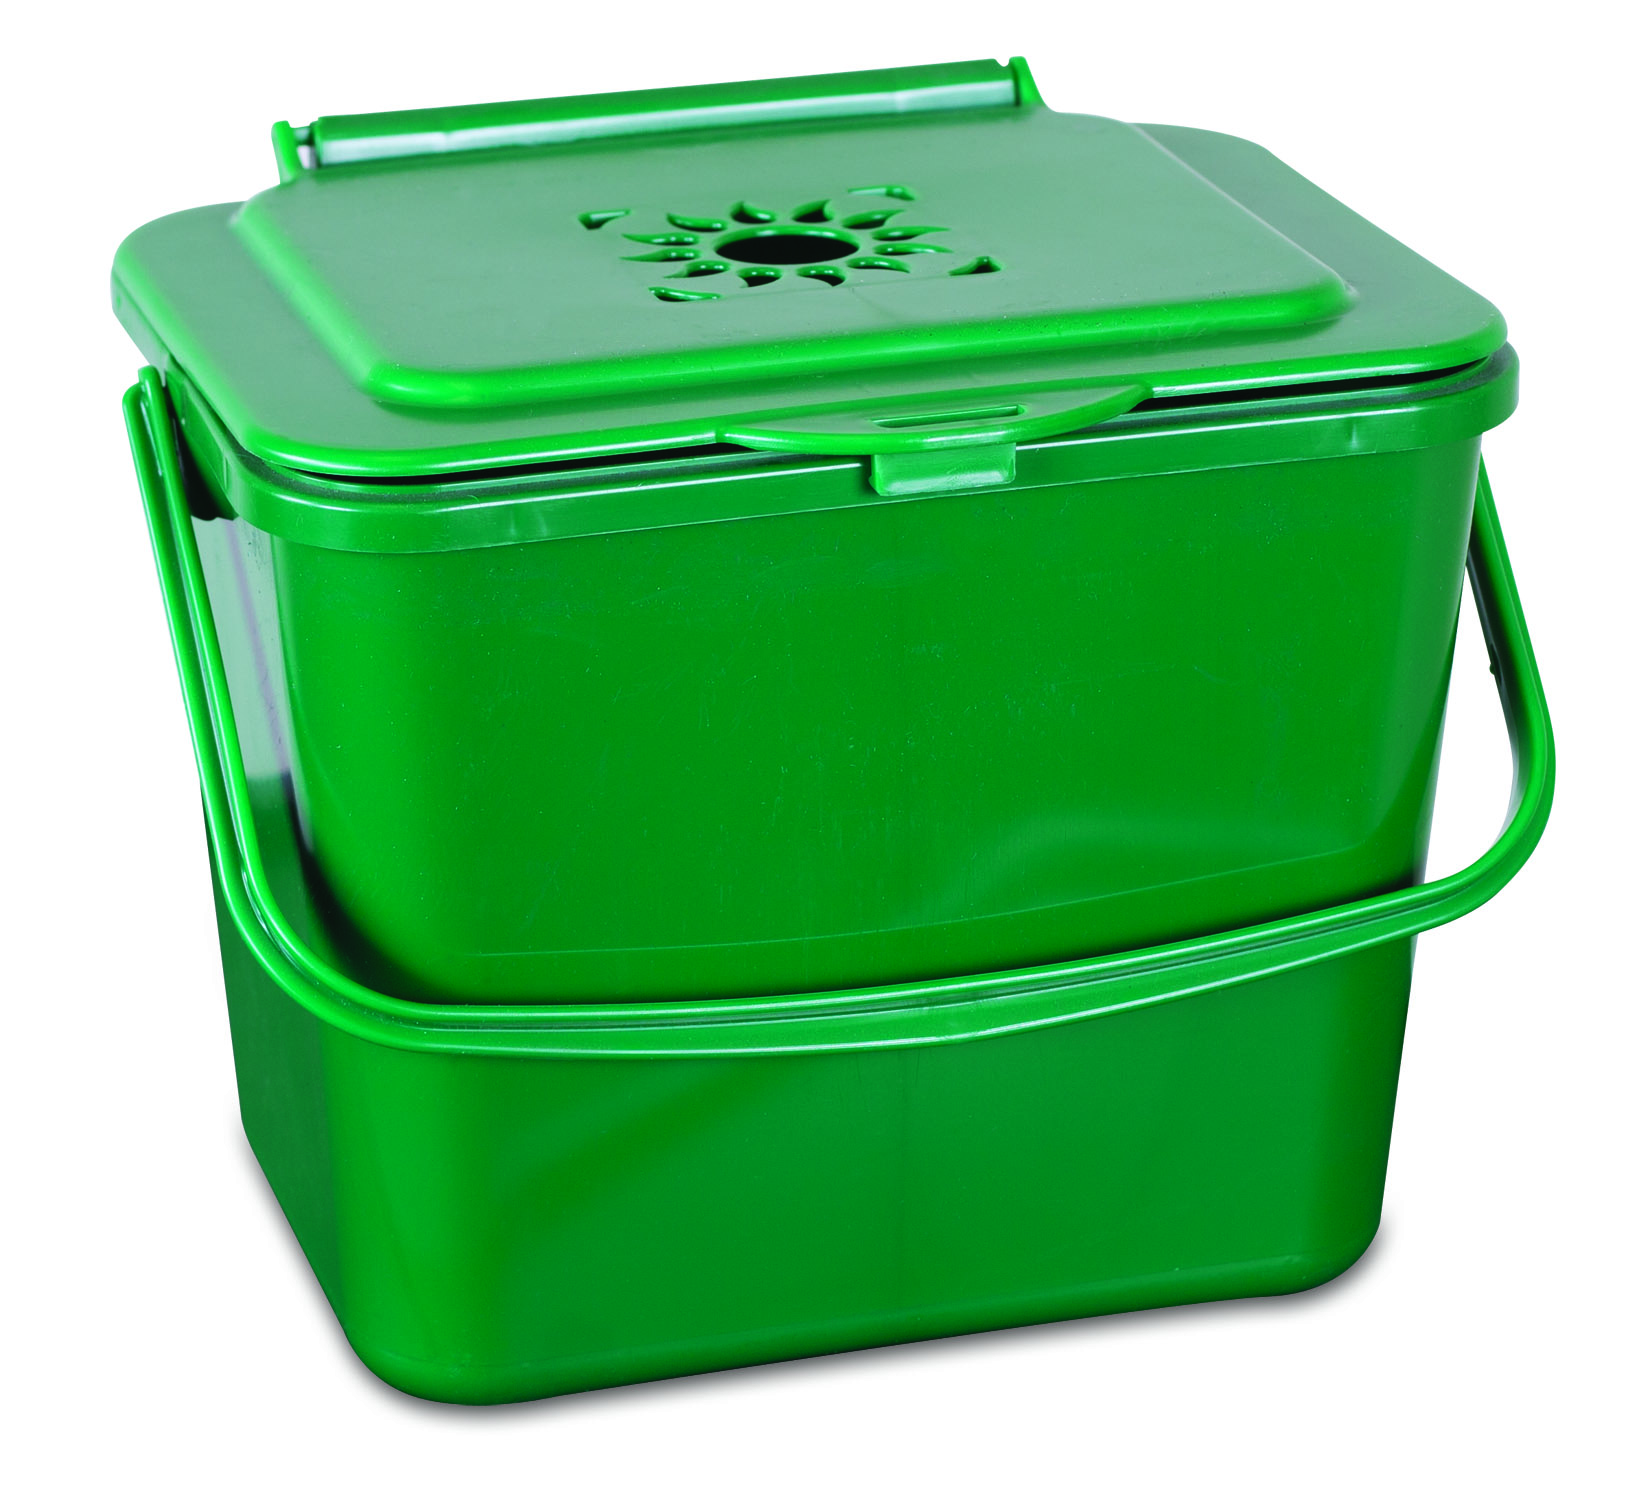 Kitchen Compost Collection Container Recycling Bin News